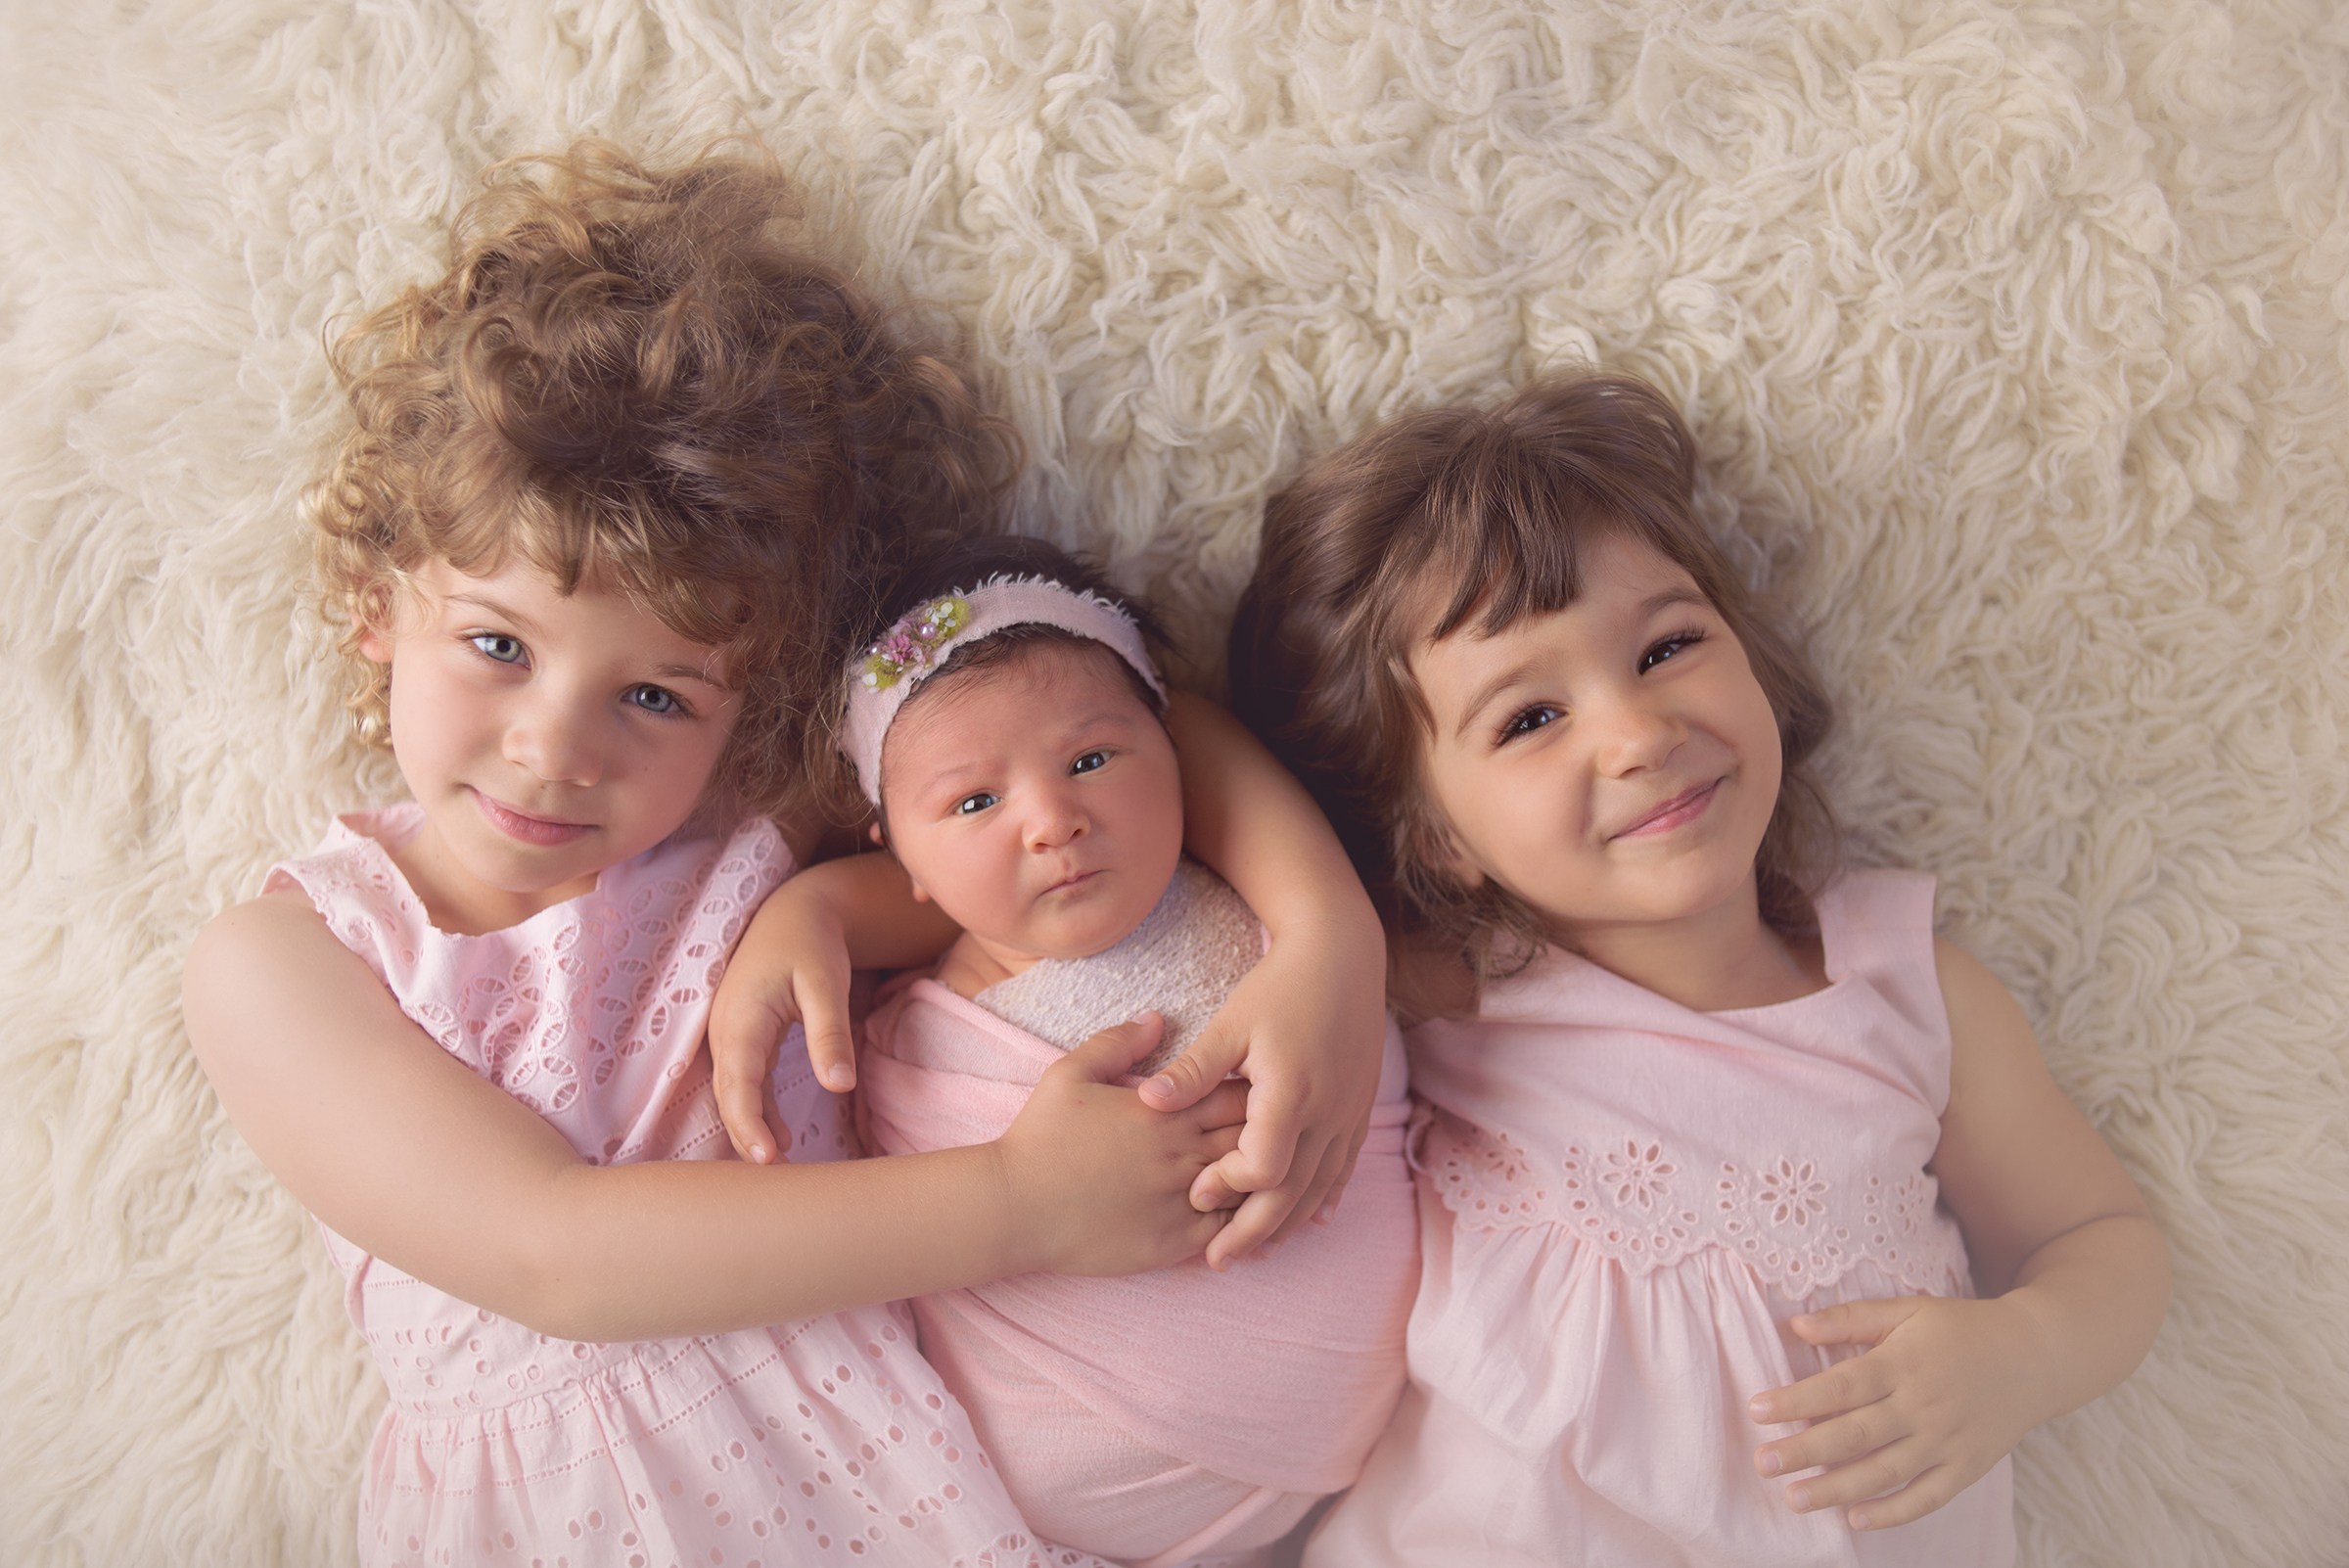 Family and newborn portrait photography studio in San Diego, CA